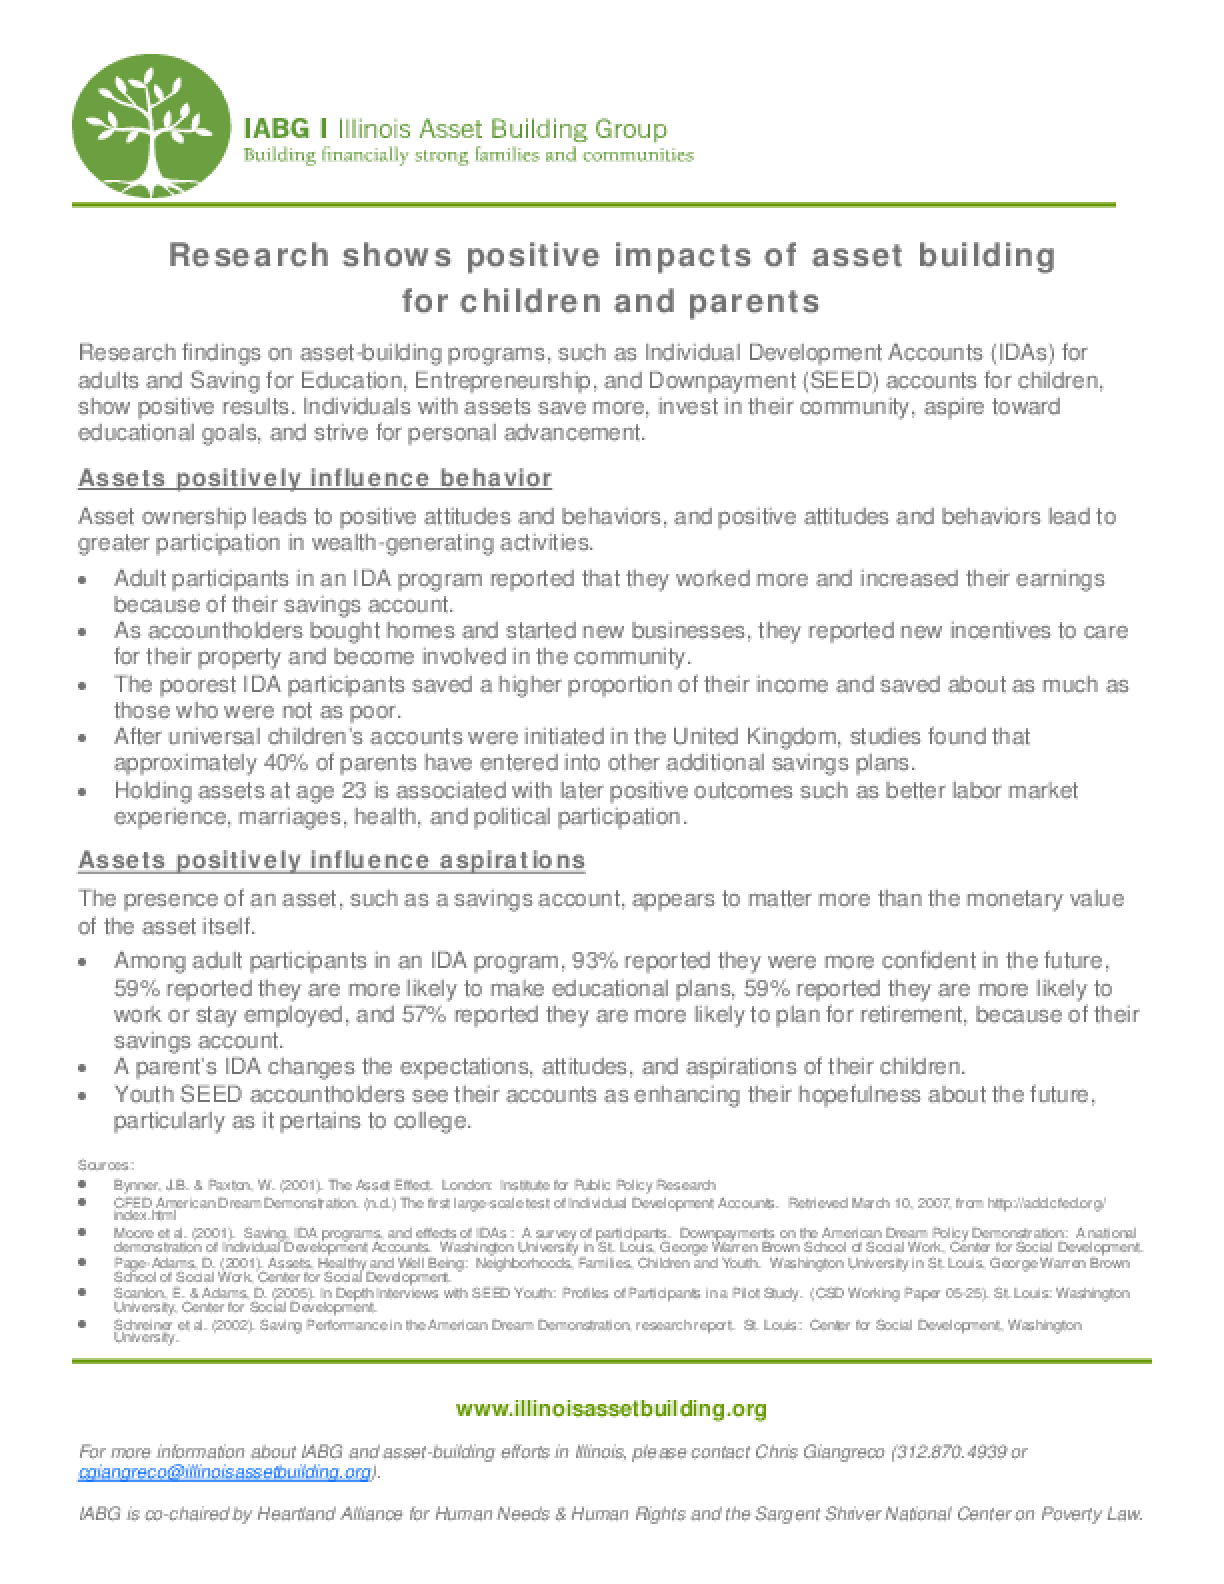 Research Shows Positive Impacts of Asset Building for Children and Parents